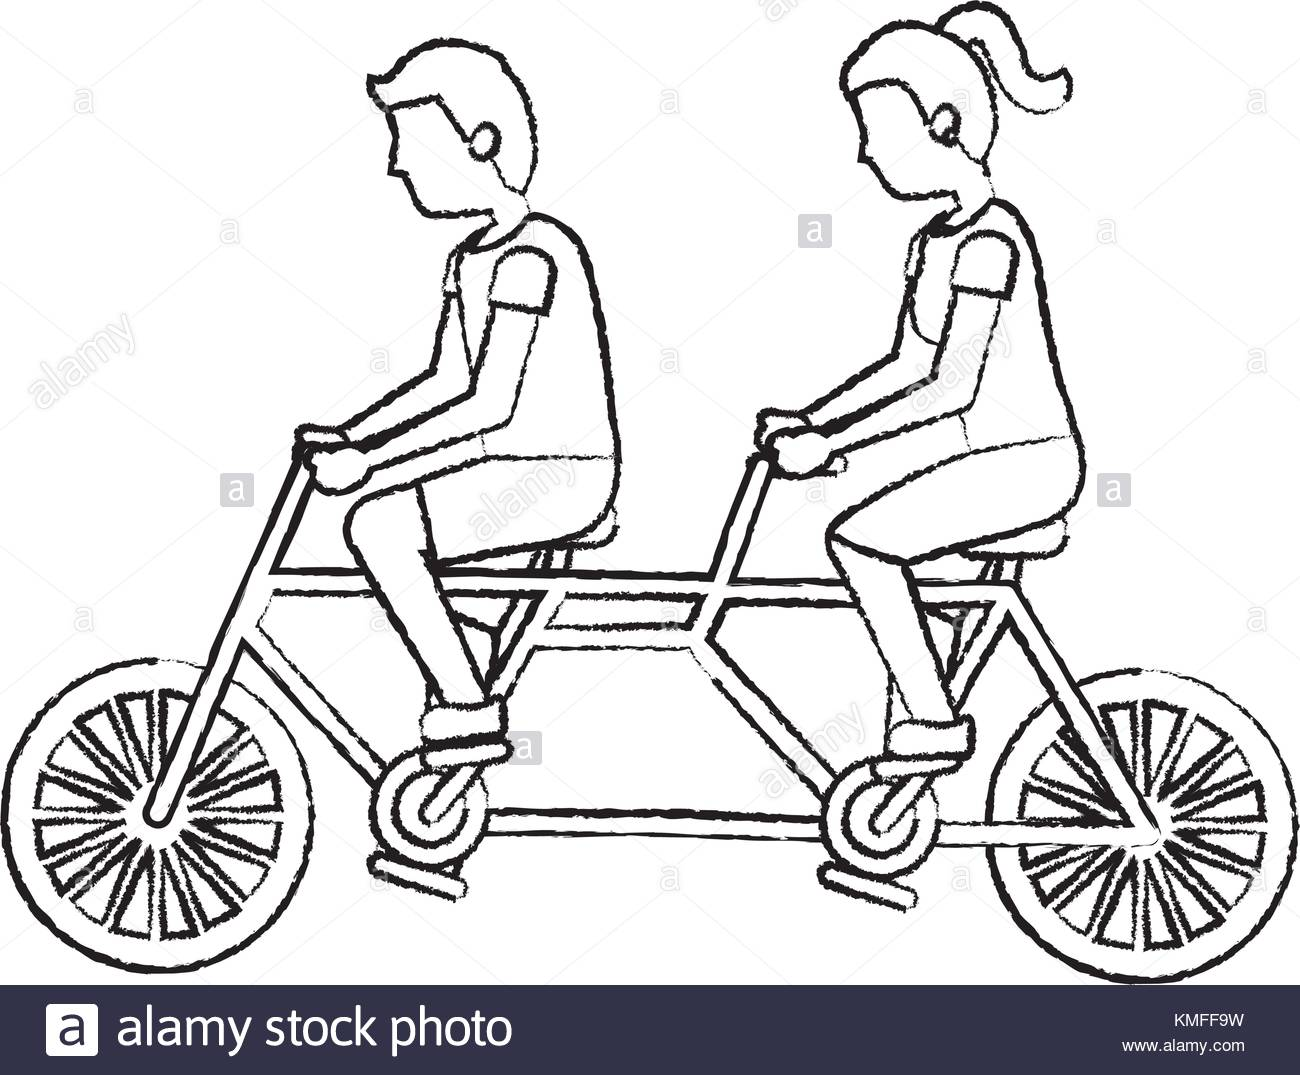 1300x1075 Tandem Bicycle Stock Vector Images